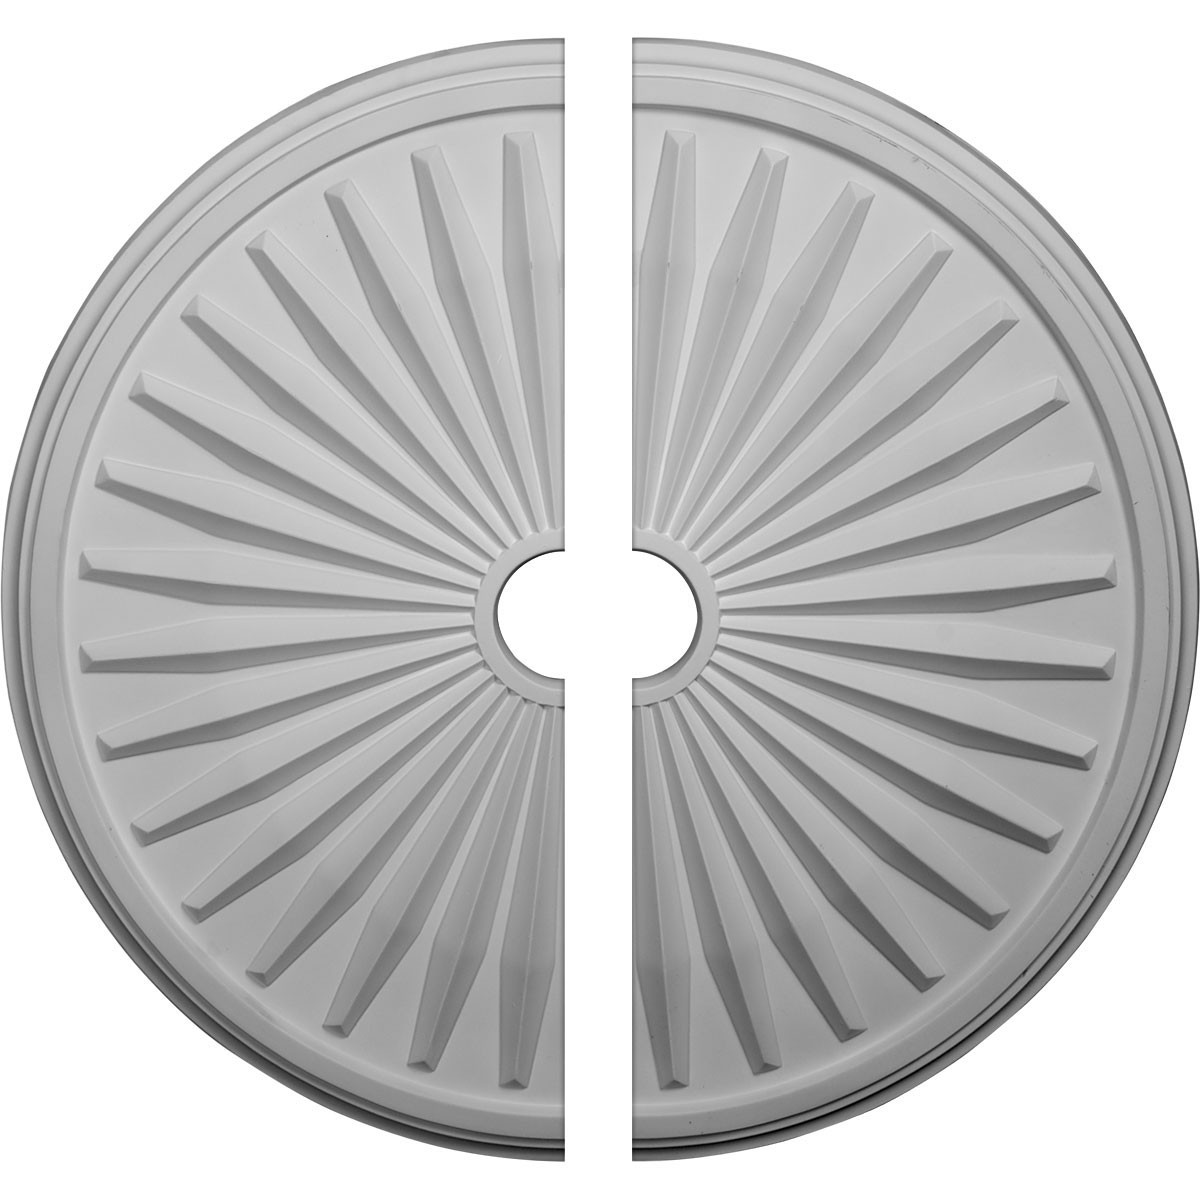 """EM-CM33LE2 - 33 1/8""""OD x 3 1/2""""ID x 1 3/8""""P Leandros Ceiling Medallion, Two Piece (Fits Canopies up to 5"""")"""